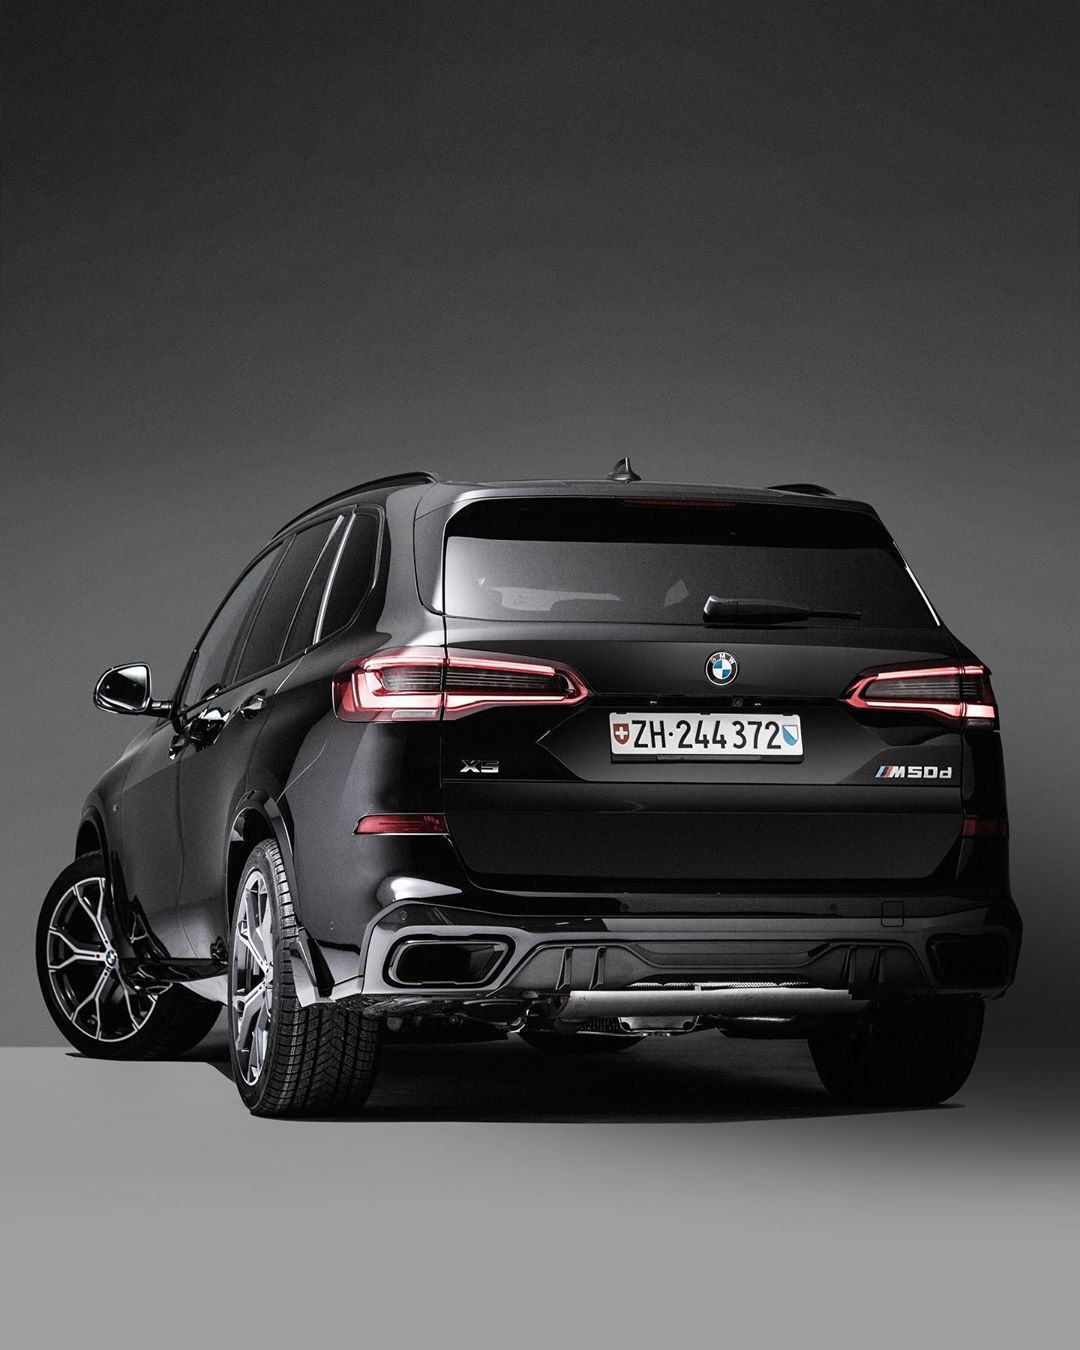 Bmw Switzerland Launches The Special X5 Edition 20 Jahre Limited Edition Models